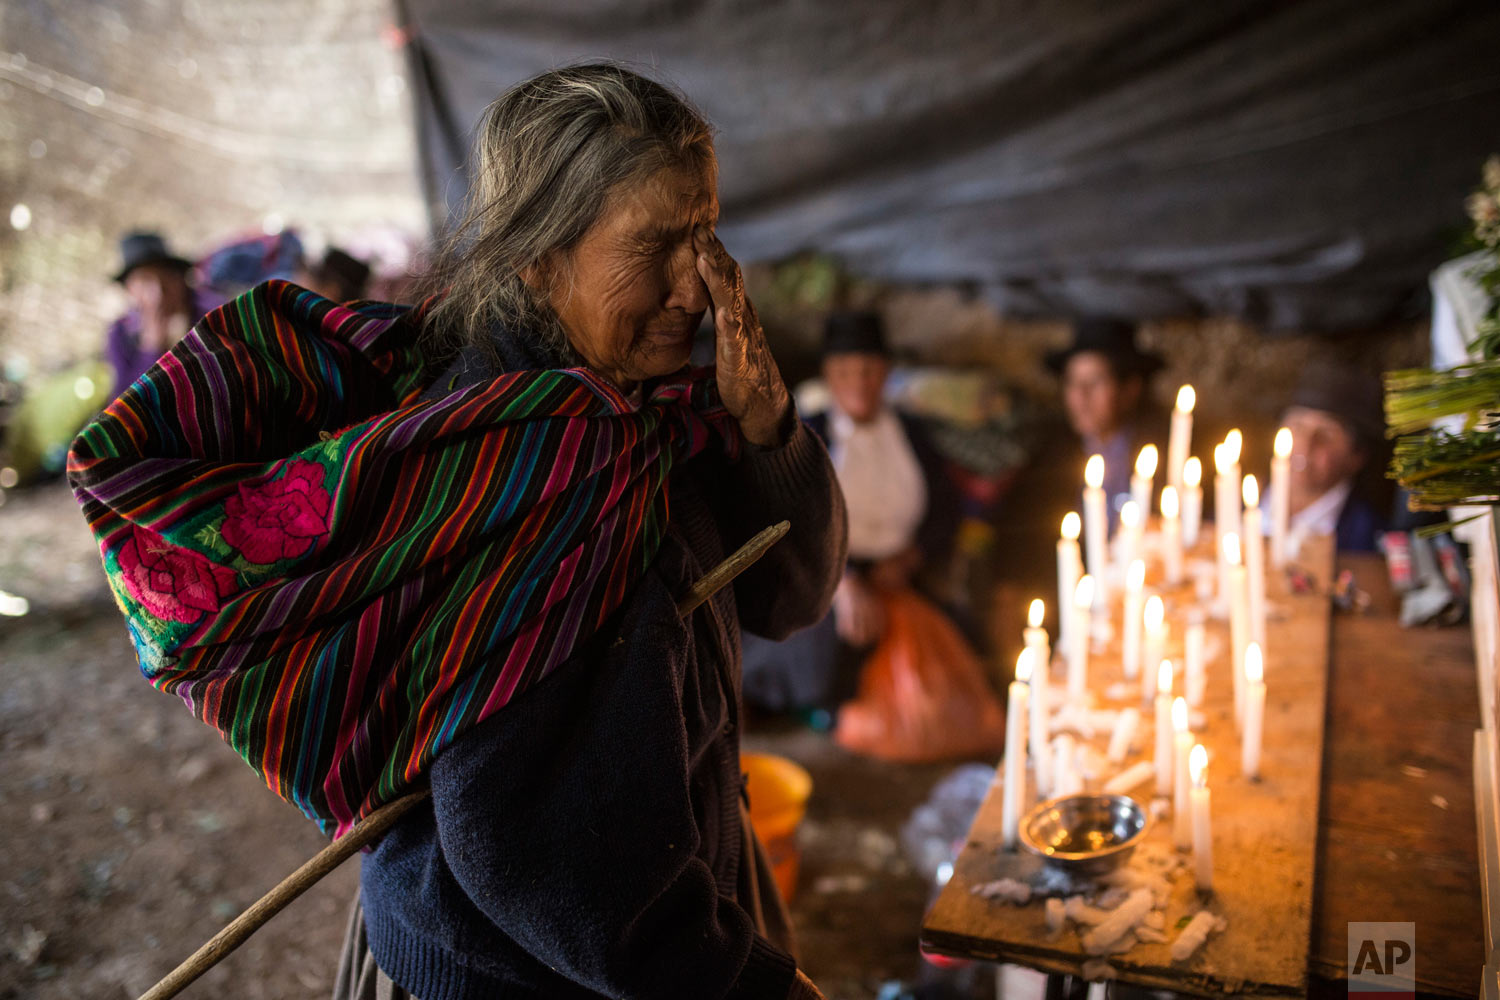 Paulina Tineo Canchari cries as she stands before the many coffins of relatives killed by the Shining Path guerrillas and the Peruvian army in the 1980s, during their proper burial in Quinuas, in Peru's Ayacucho province, Aug. 15, 2018. Thousands of Peruvian families who have spent decades wondering about loved ones who disappeared during years of bloody conflict between the state and Maoist guerrillas have new hopes for getting the closure they have been searching for. (AP Photo/Rodrigo Abd)